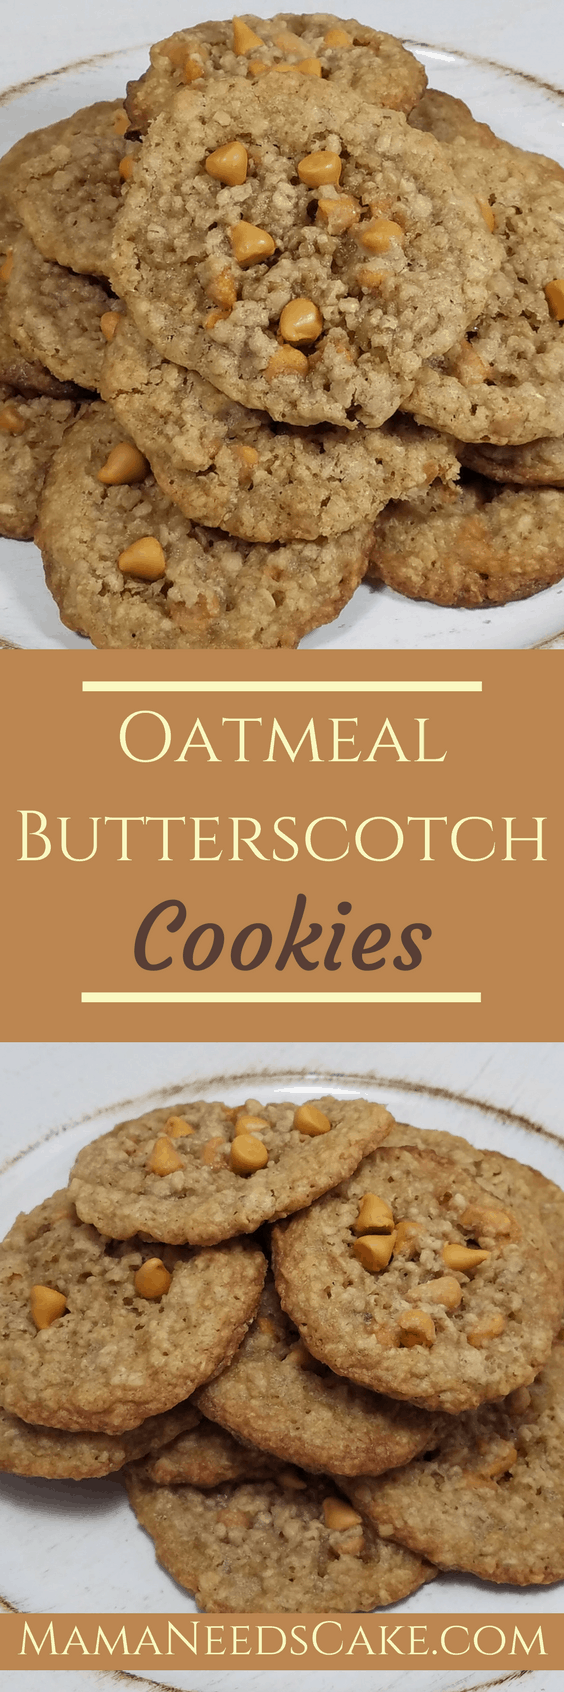 Oatmeal Butterscotch Cookies Recipe Mama Needs Cake